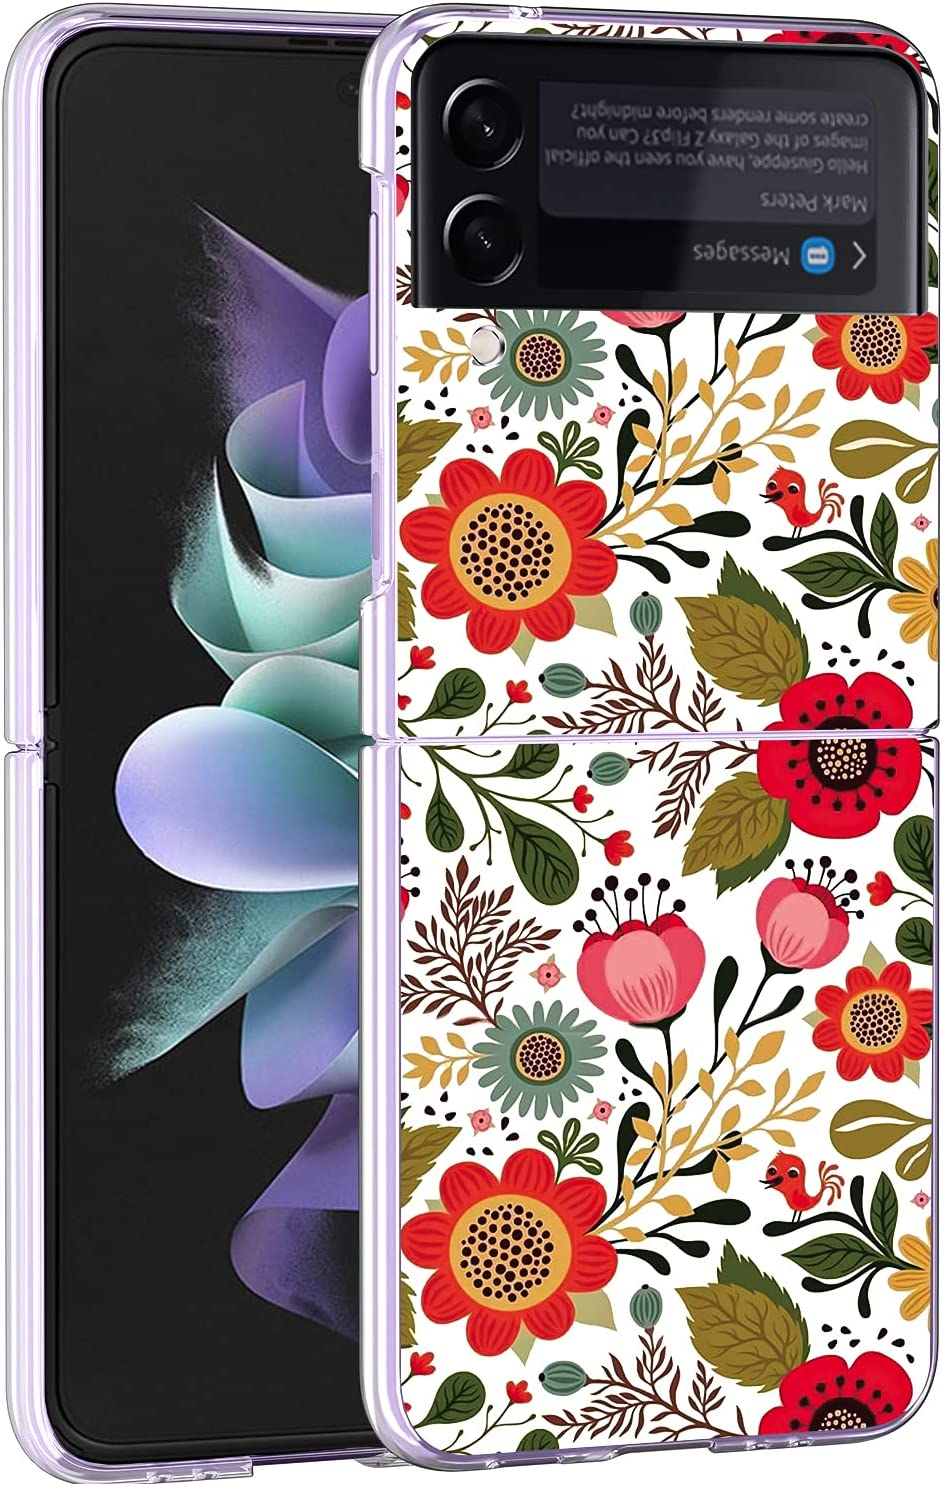 Newseego Compatible with Samsung Galaxy Z Flip 3 Clear Case, Fashion Cute Flower Floral Shockproof Protective [Slim Thin] Crystal Hard PC Anti-Scratch Pretty Cover Design for Girls Women-Garden Party